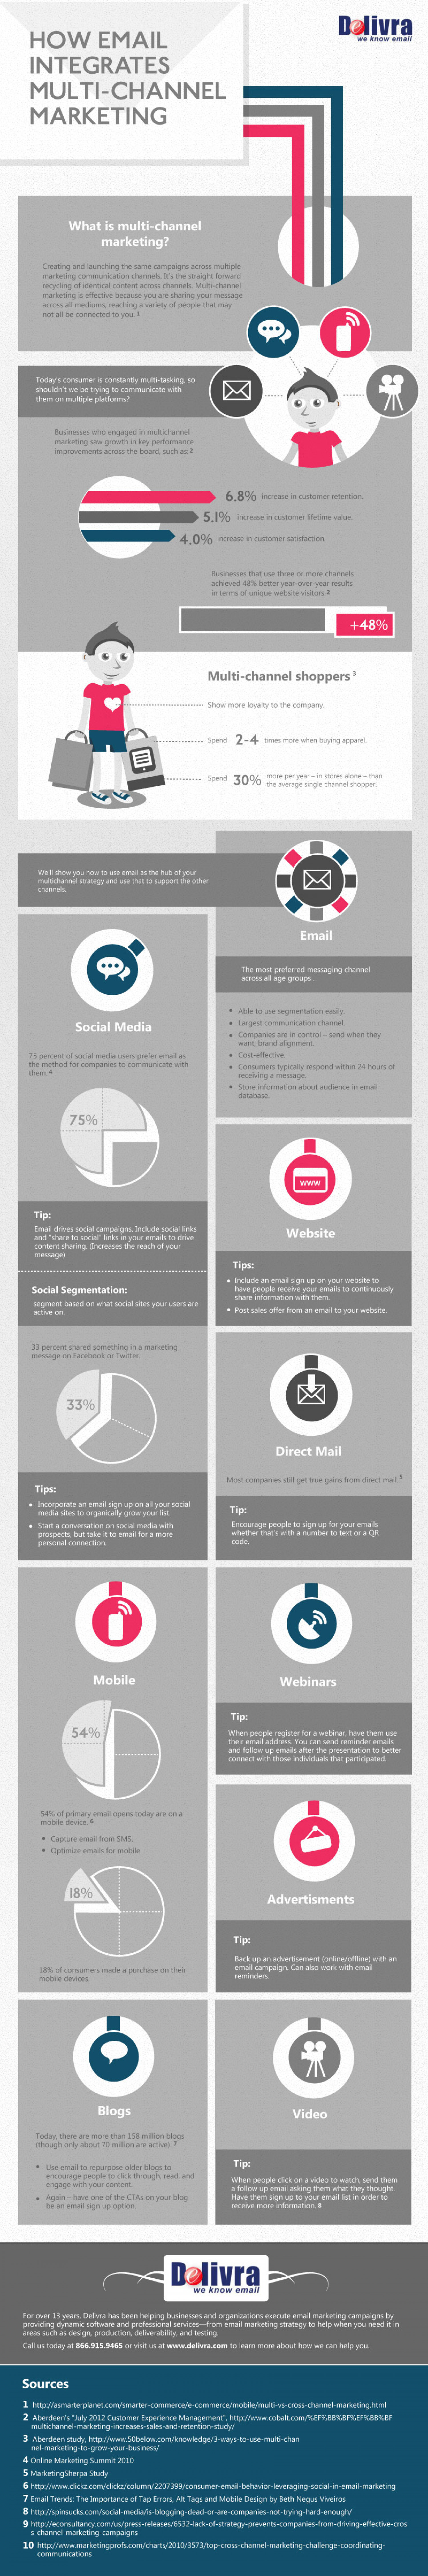 How Email Integrates Multi-Channel Marketing Infographic